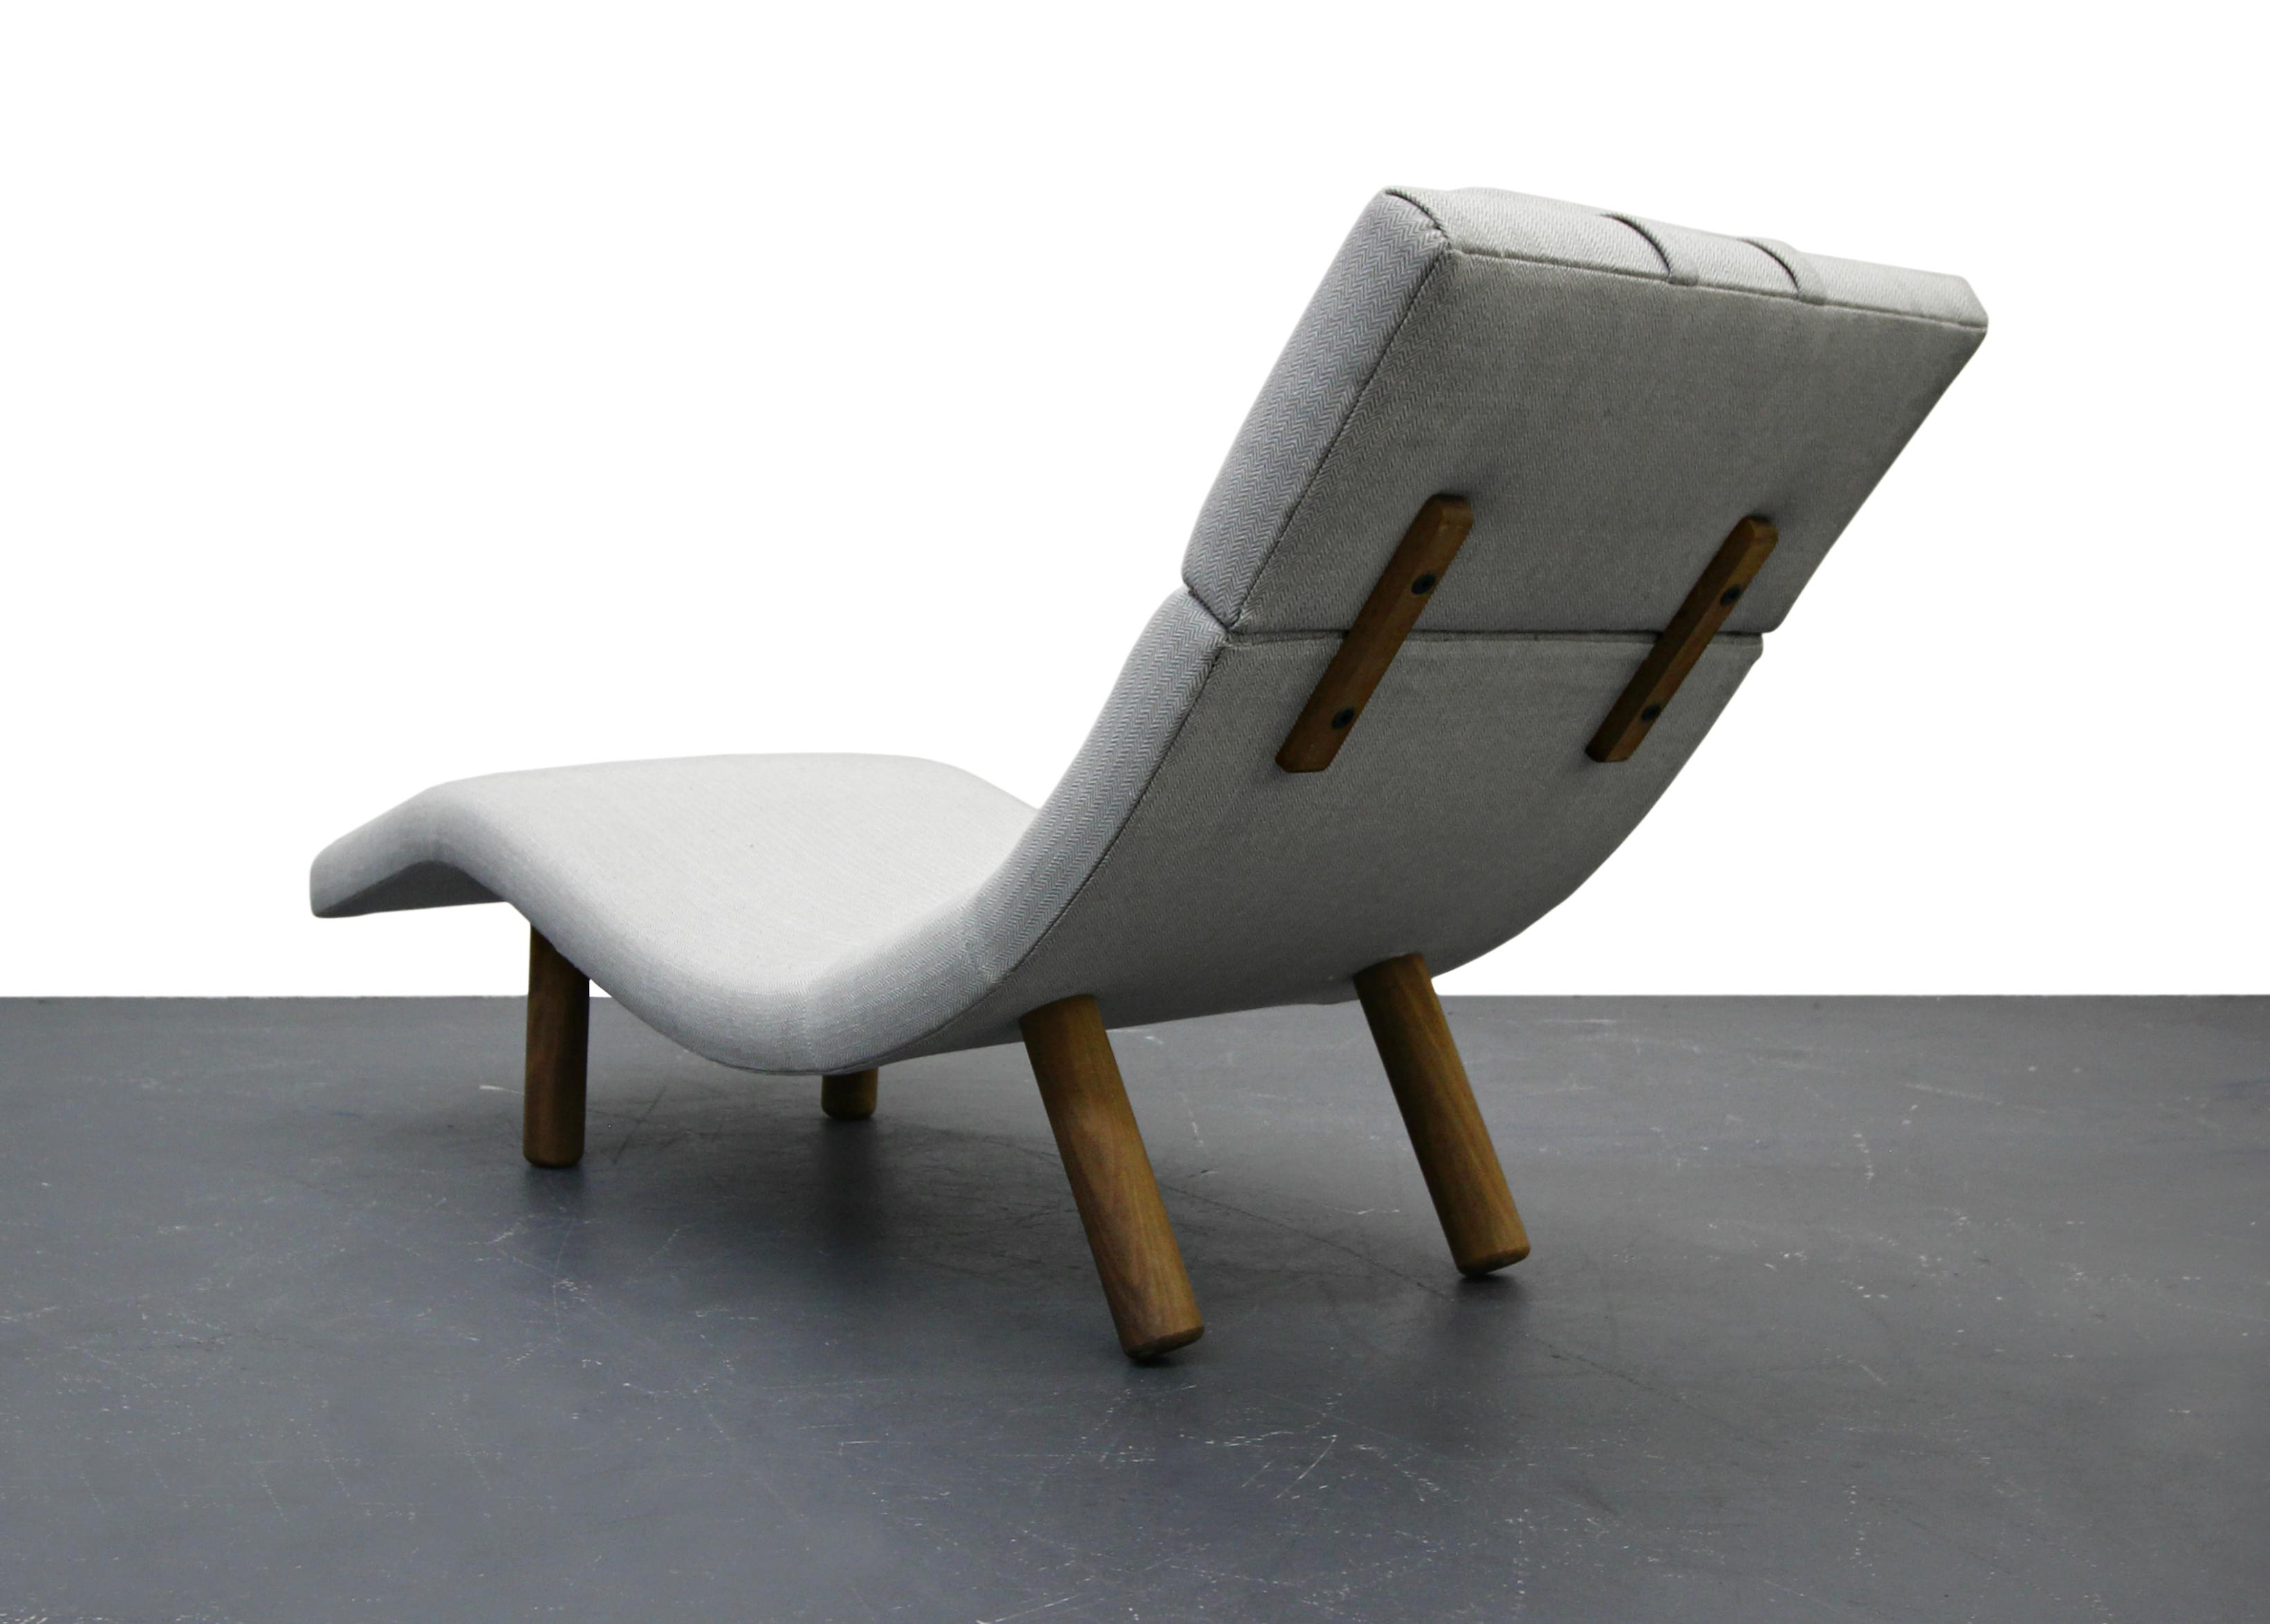 Finn Juhl Style Mid-Century Wave Chaise Lounge Chair - Image 3 of 8  sc 1 st  Chairish : wave chaise - Sectionals, Sofas & Couches